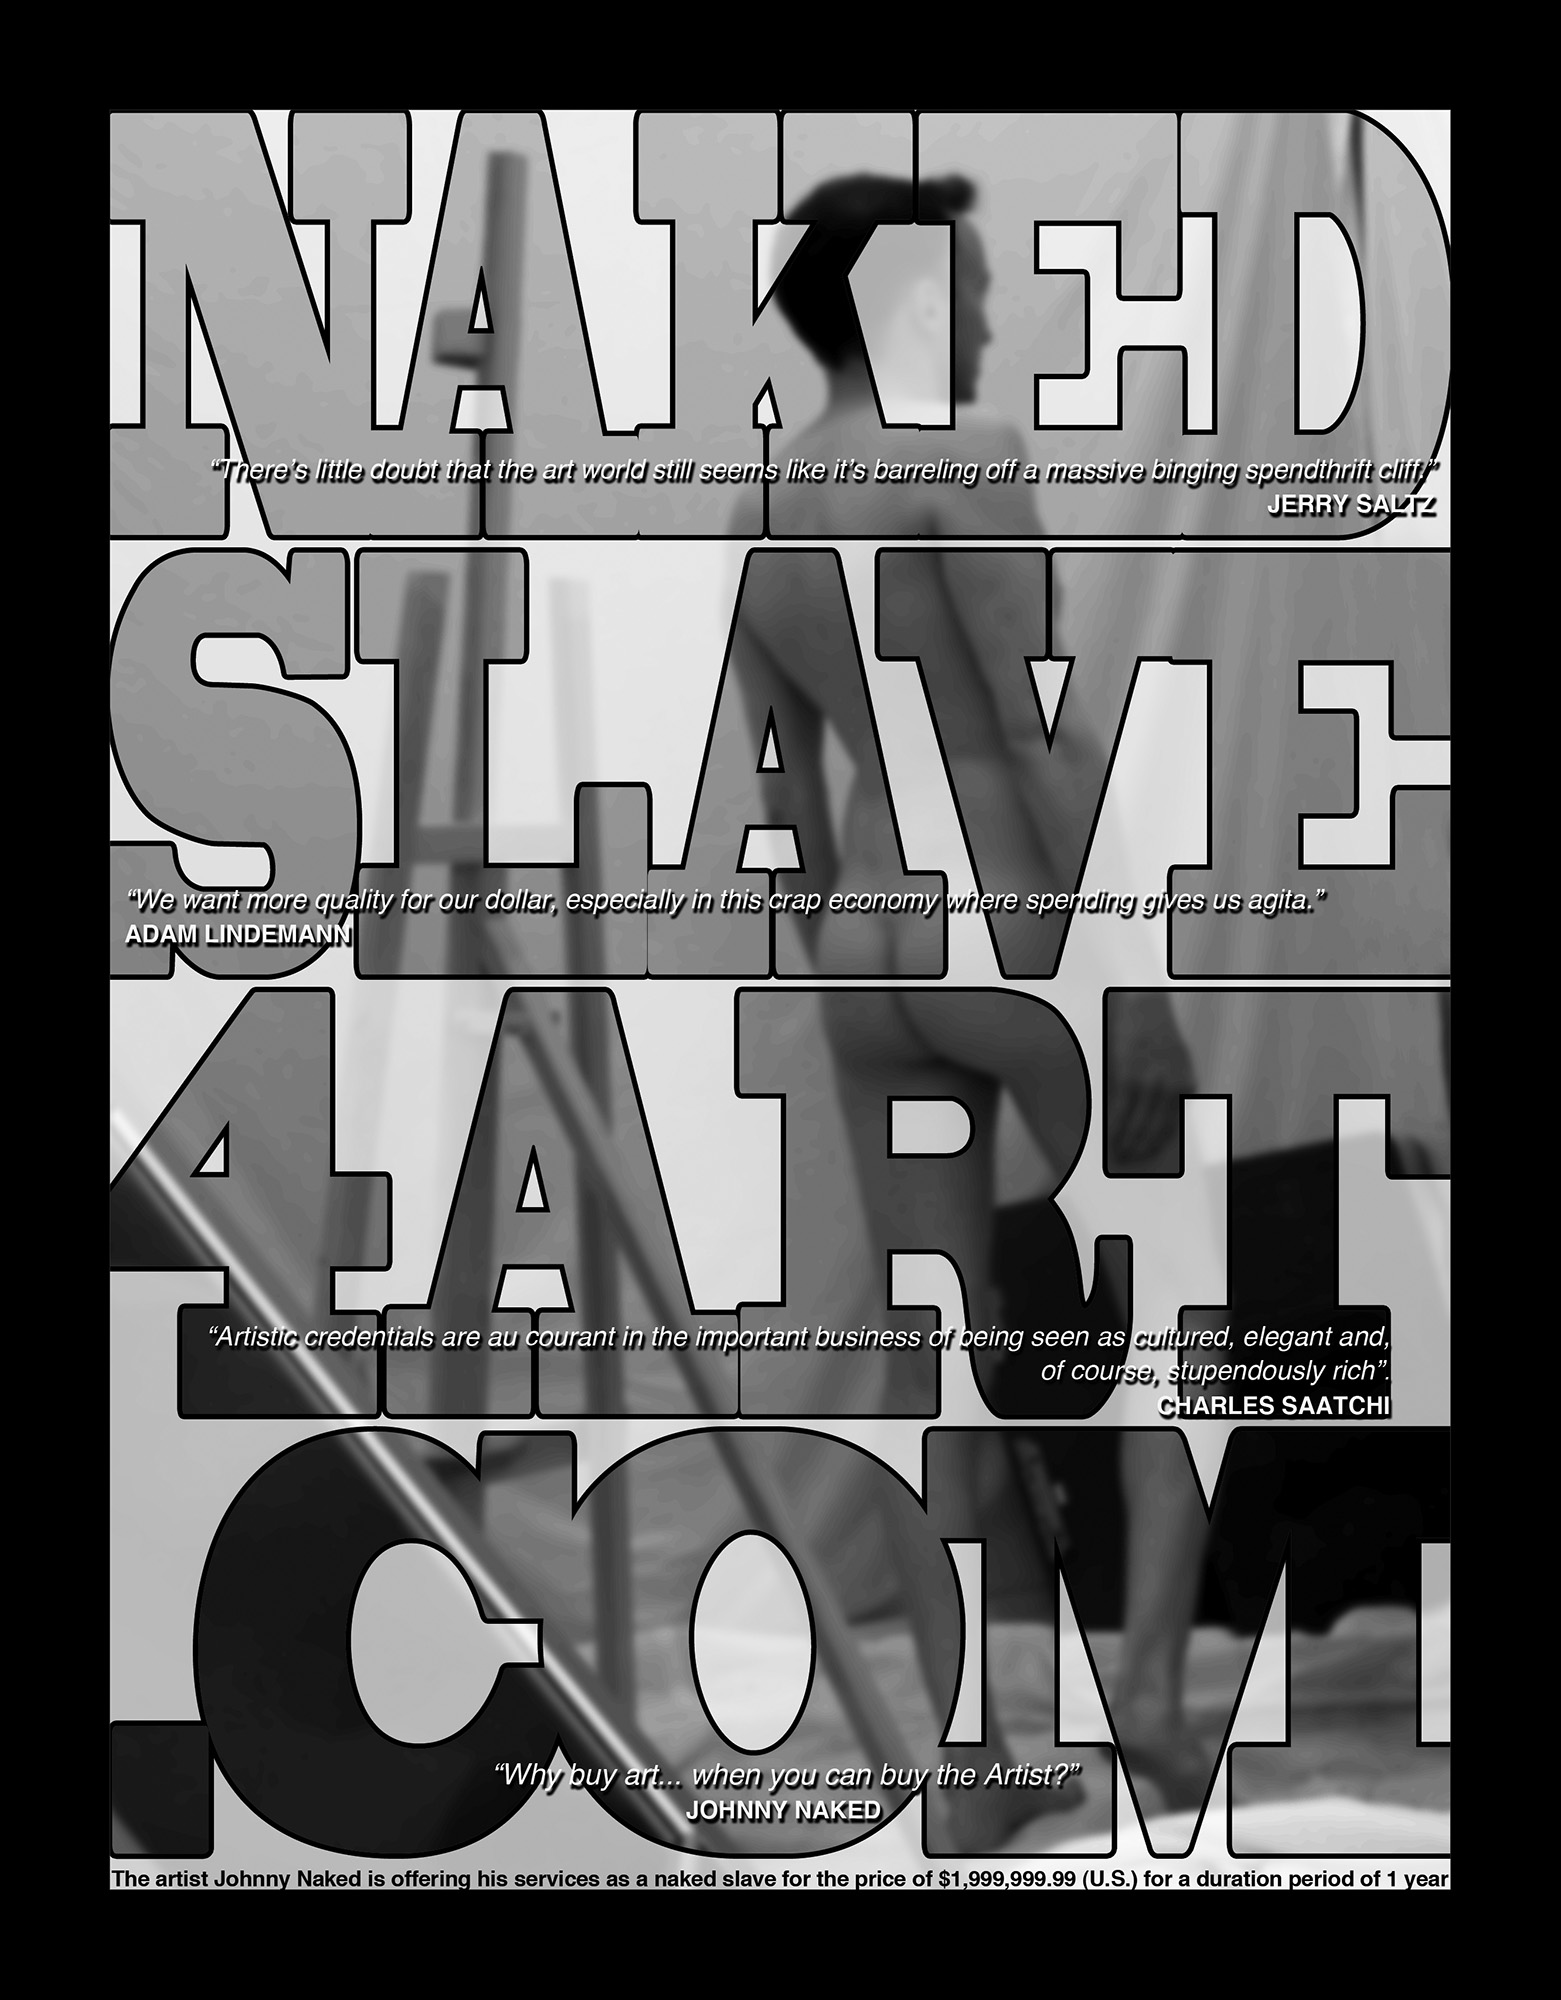 The Naked Slave 4 Art